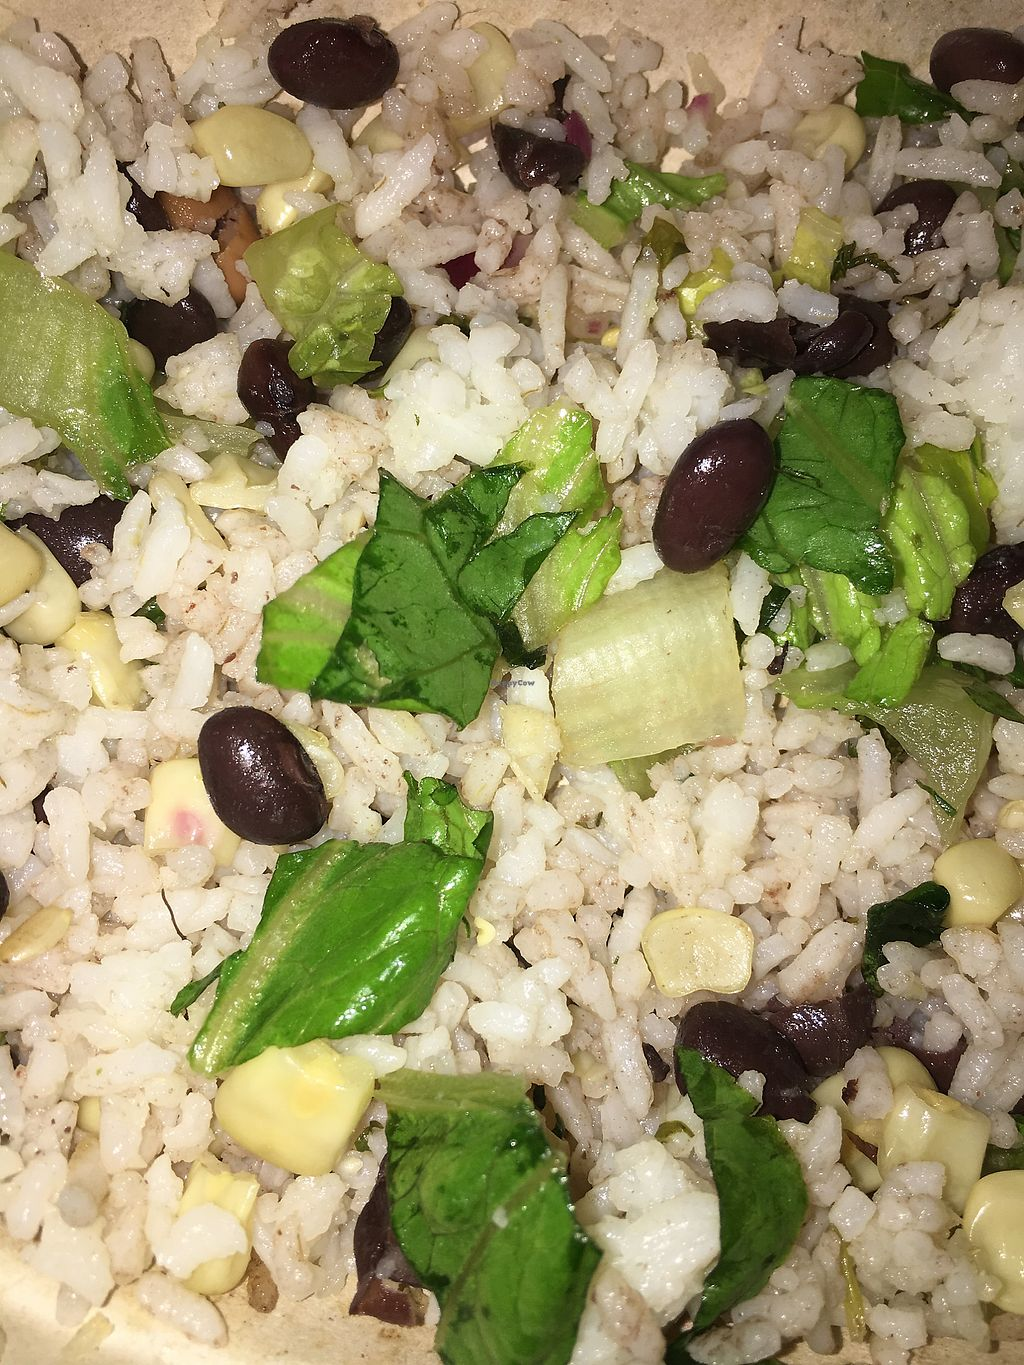 "Photo of Chipotle  by <a href=""/members/profile/brianna_roth"">brianna_roth</a> <br/>White Rice, Black Beans, Corn, and Lettuce! Yum <br/> August 8, 2017  - <a href='/contact/abuse/image/74256/290460'>Report</a>"